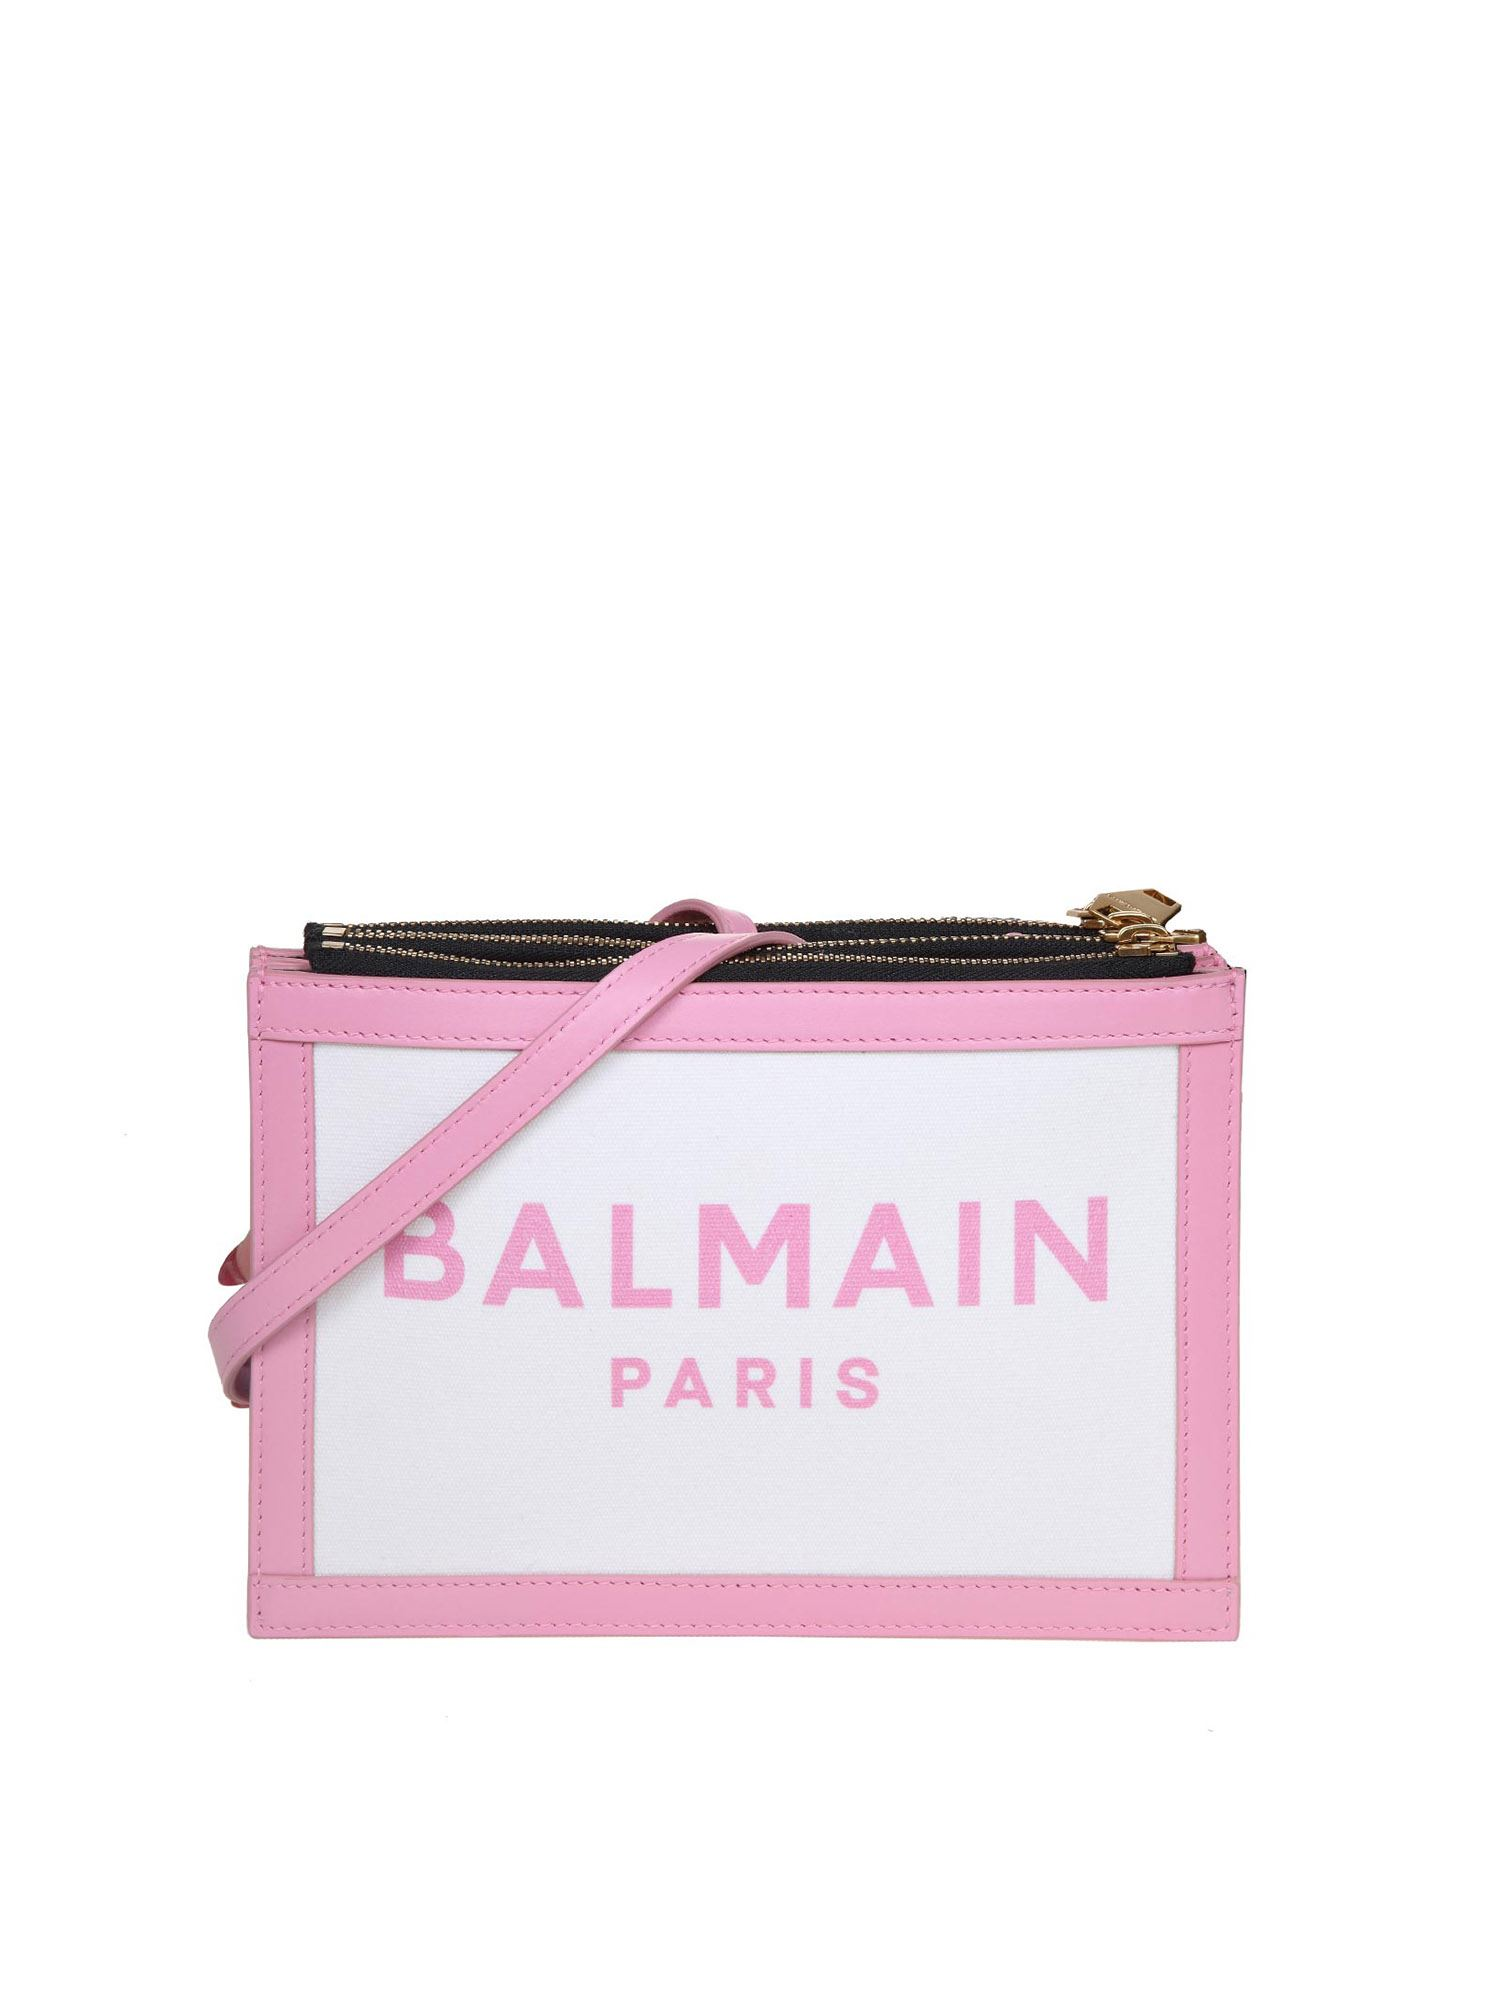 Balmain THREE POUCHES BAG IN PINK